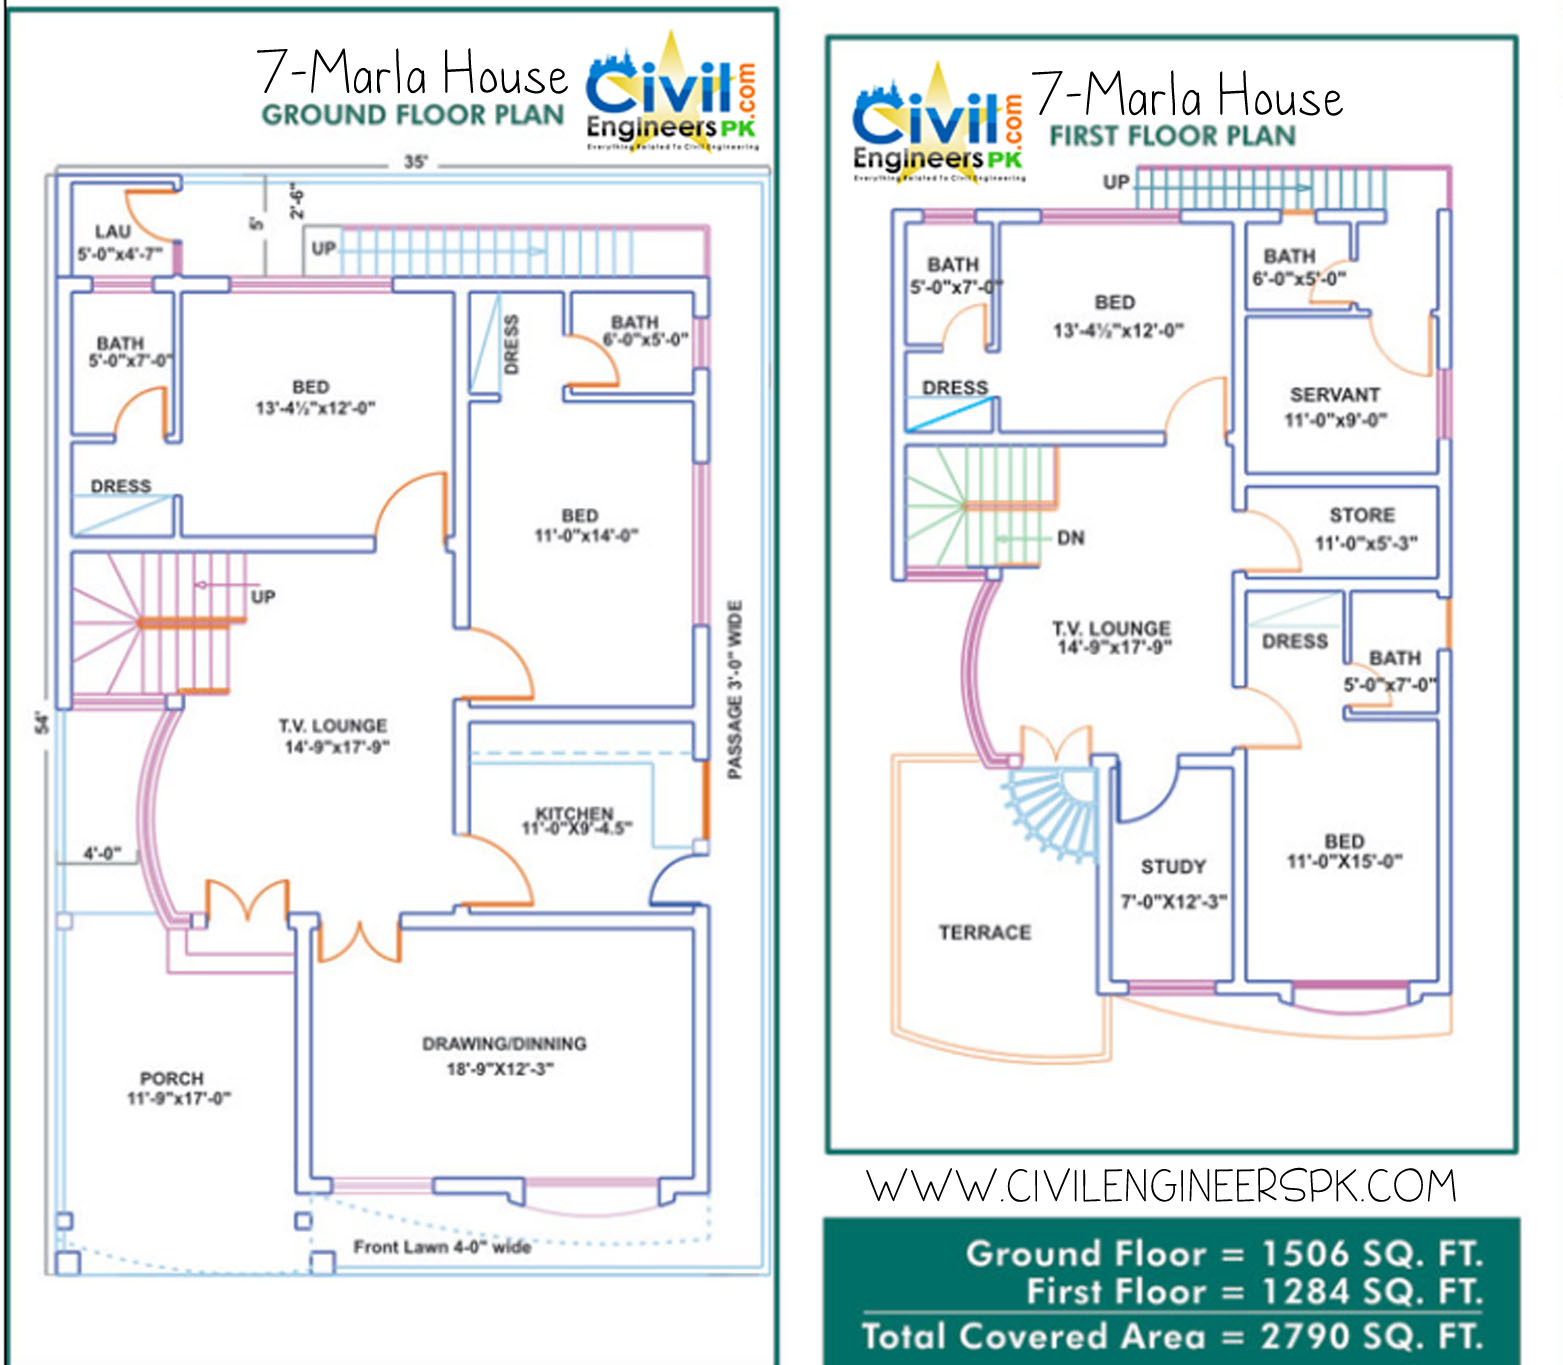 7 marla house plans civil engineers pk for House map 3d